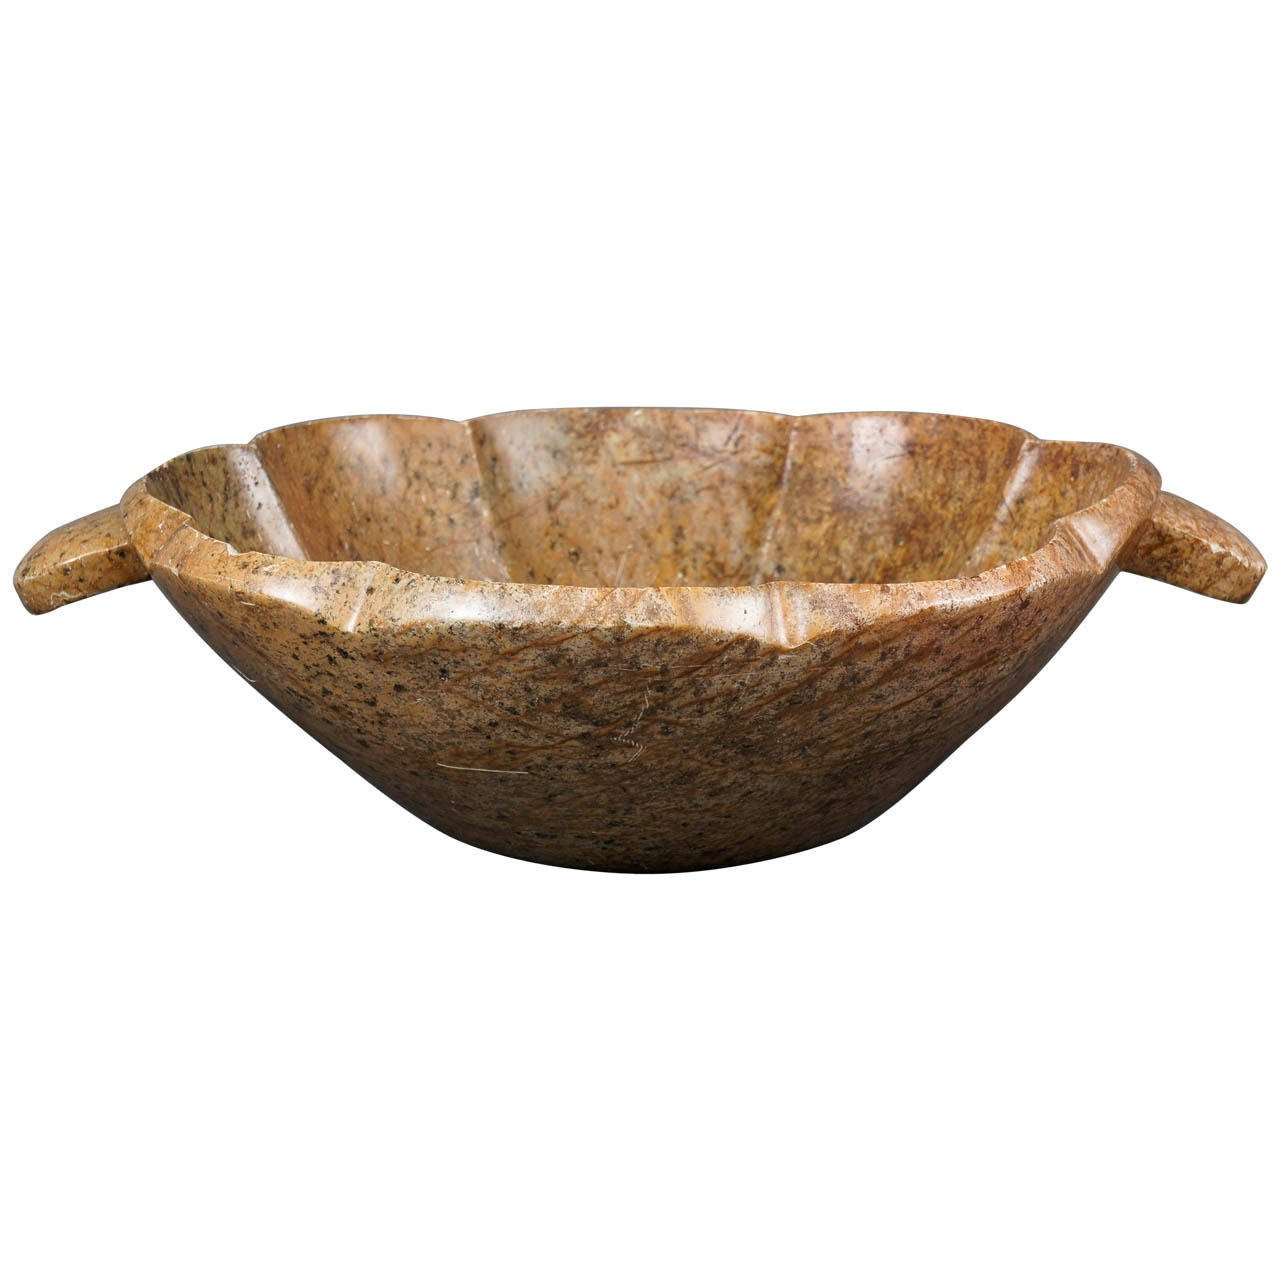 Fruit Bowl For Sale Marble Fruit Bowl For Sale At 1stdibs